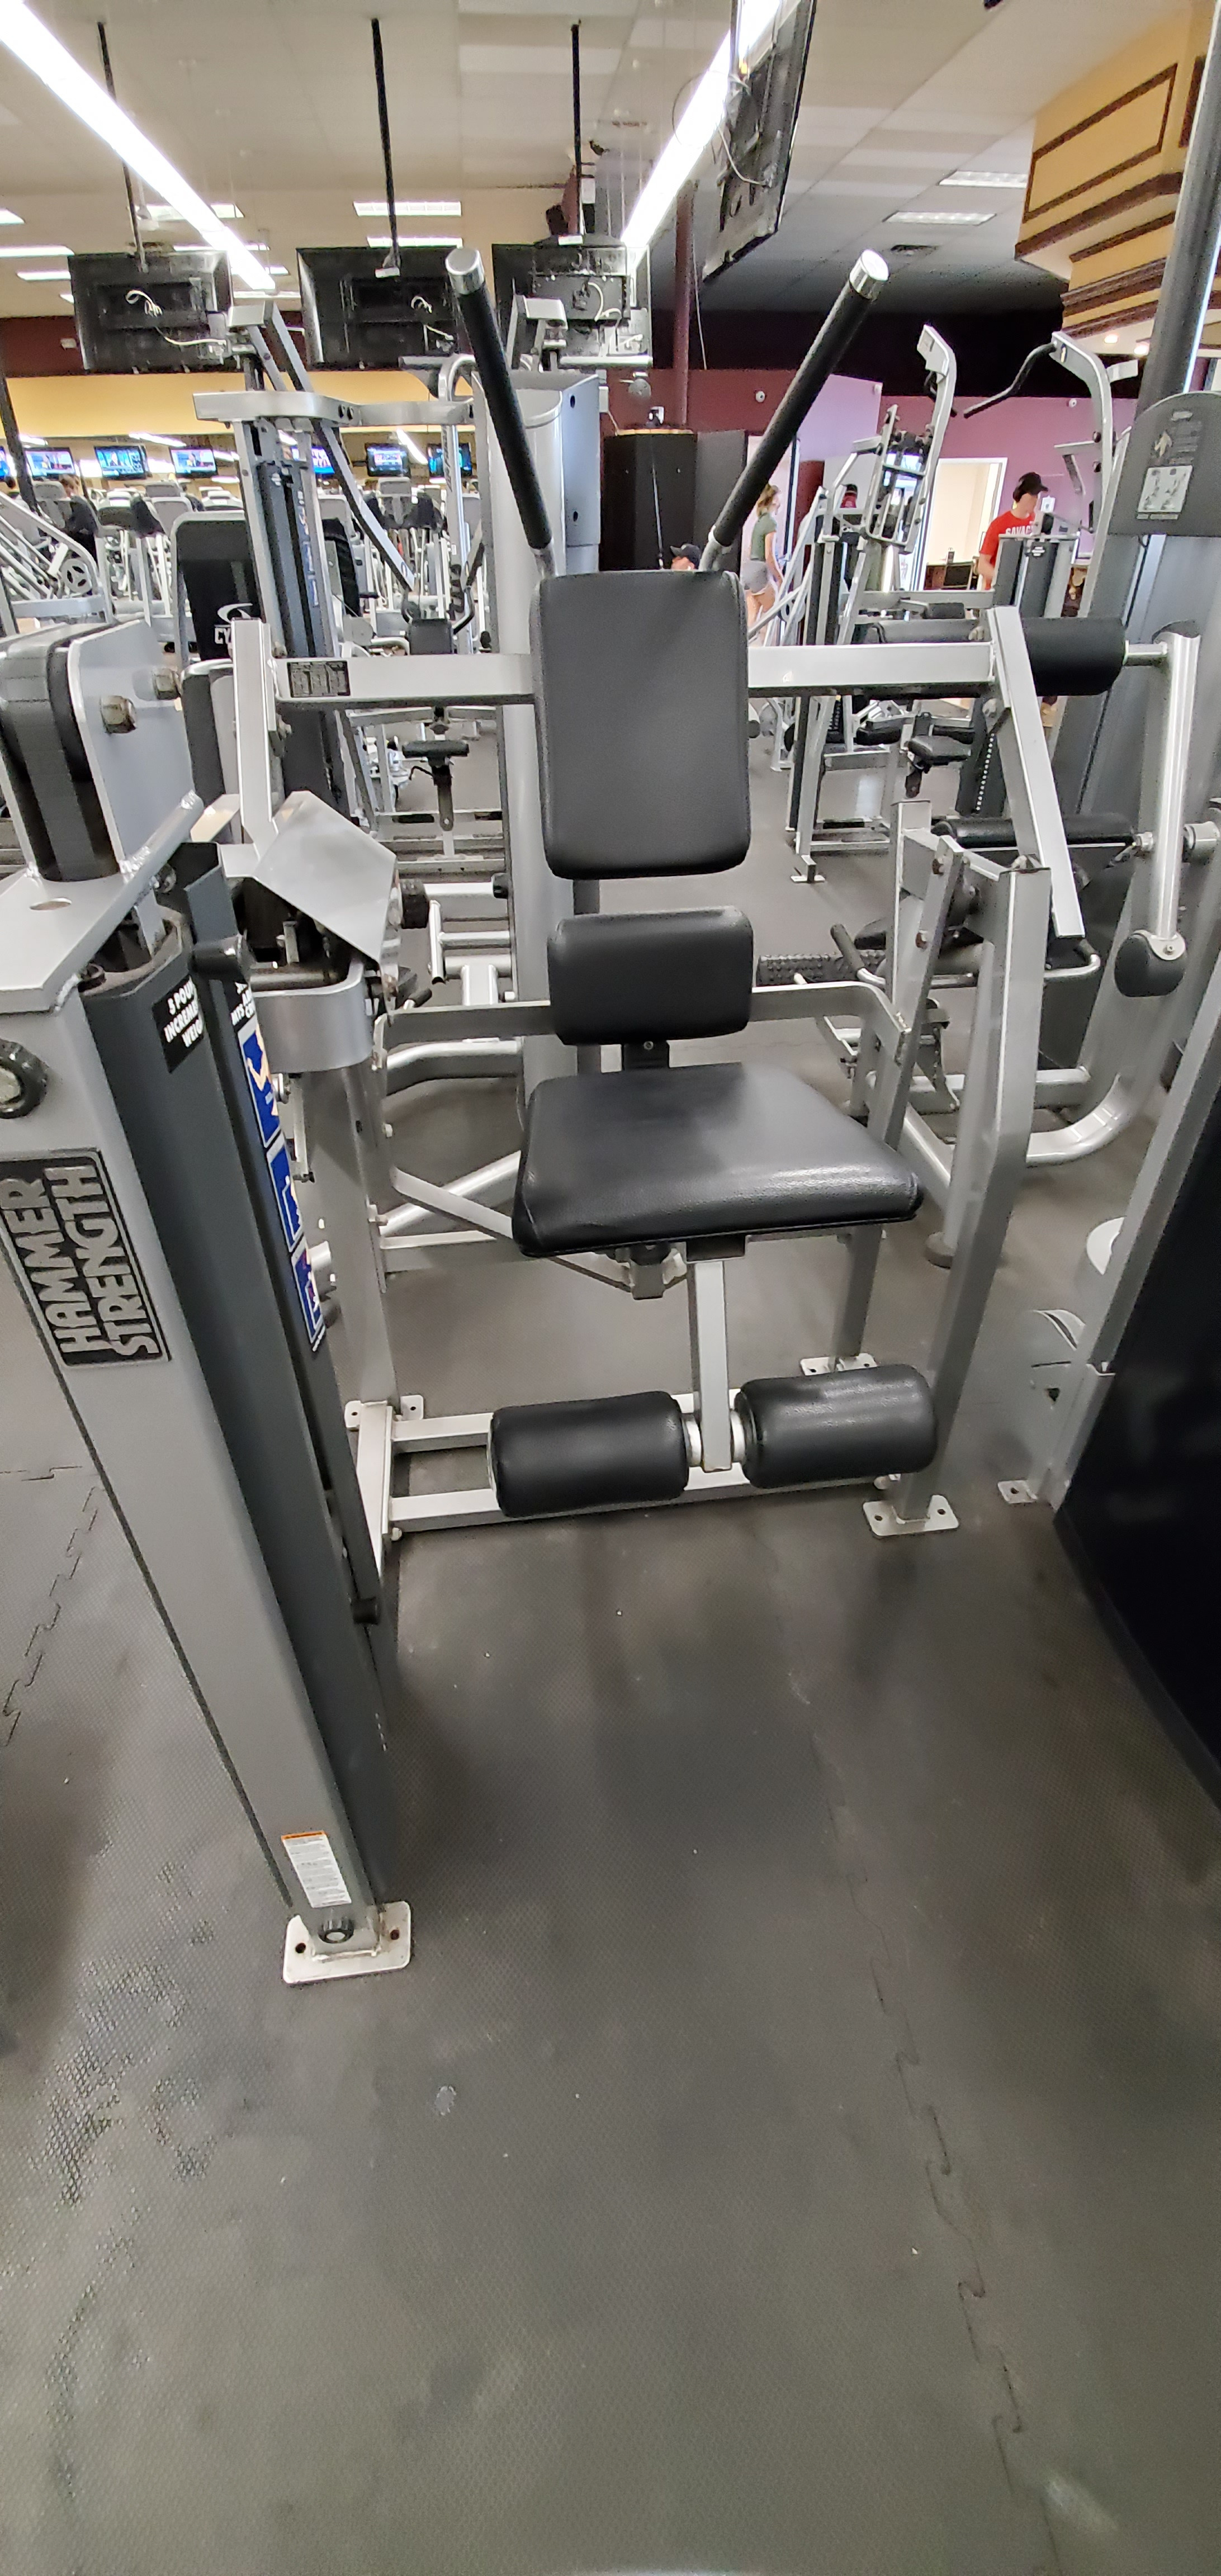 11 Piece Hammer Strength MTS Package - As Is Functional